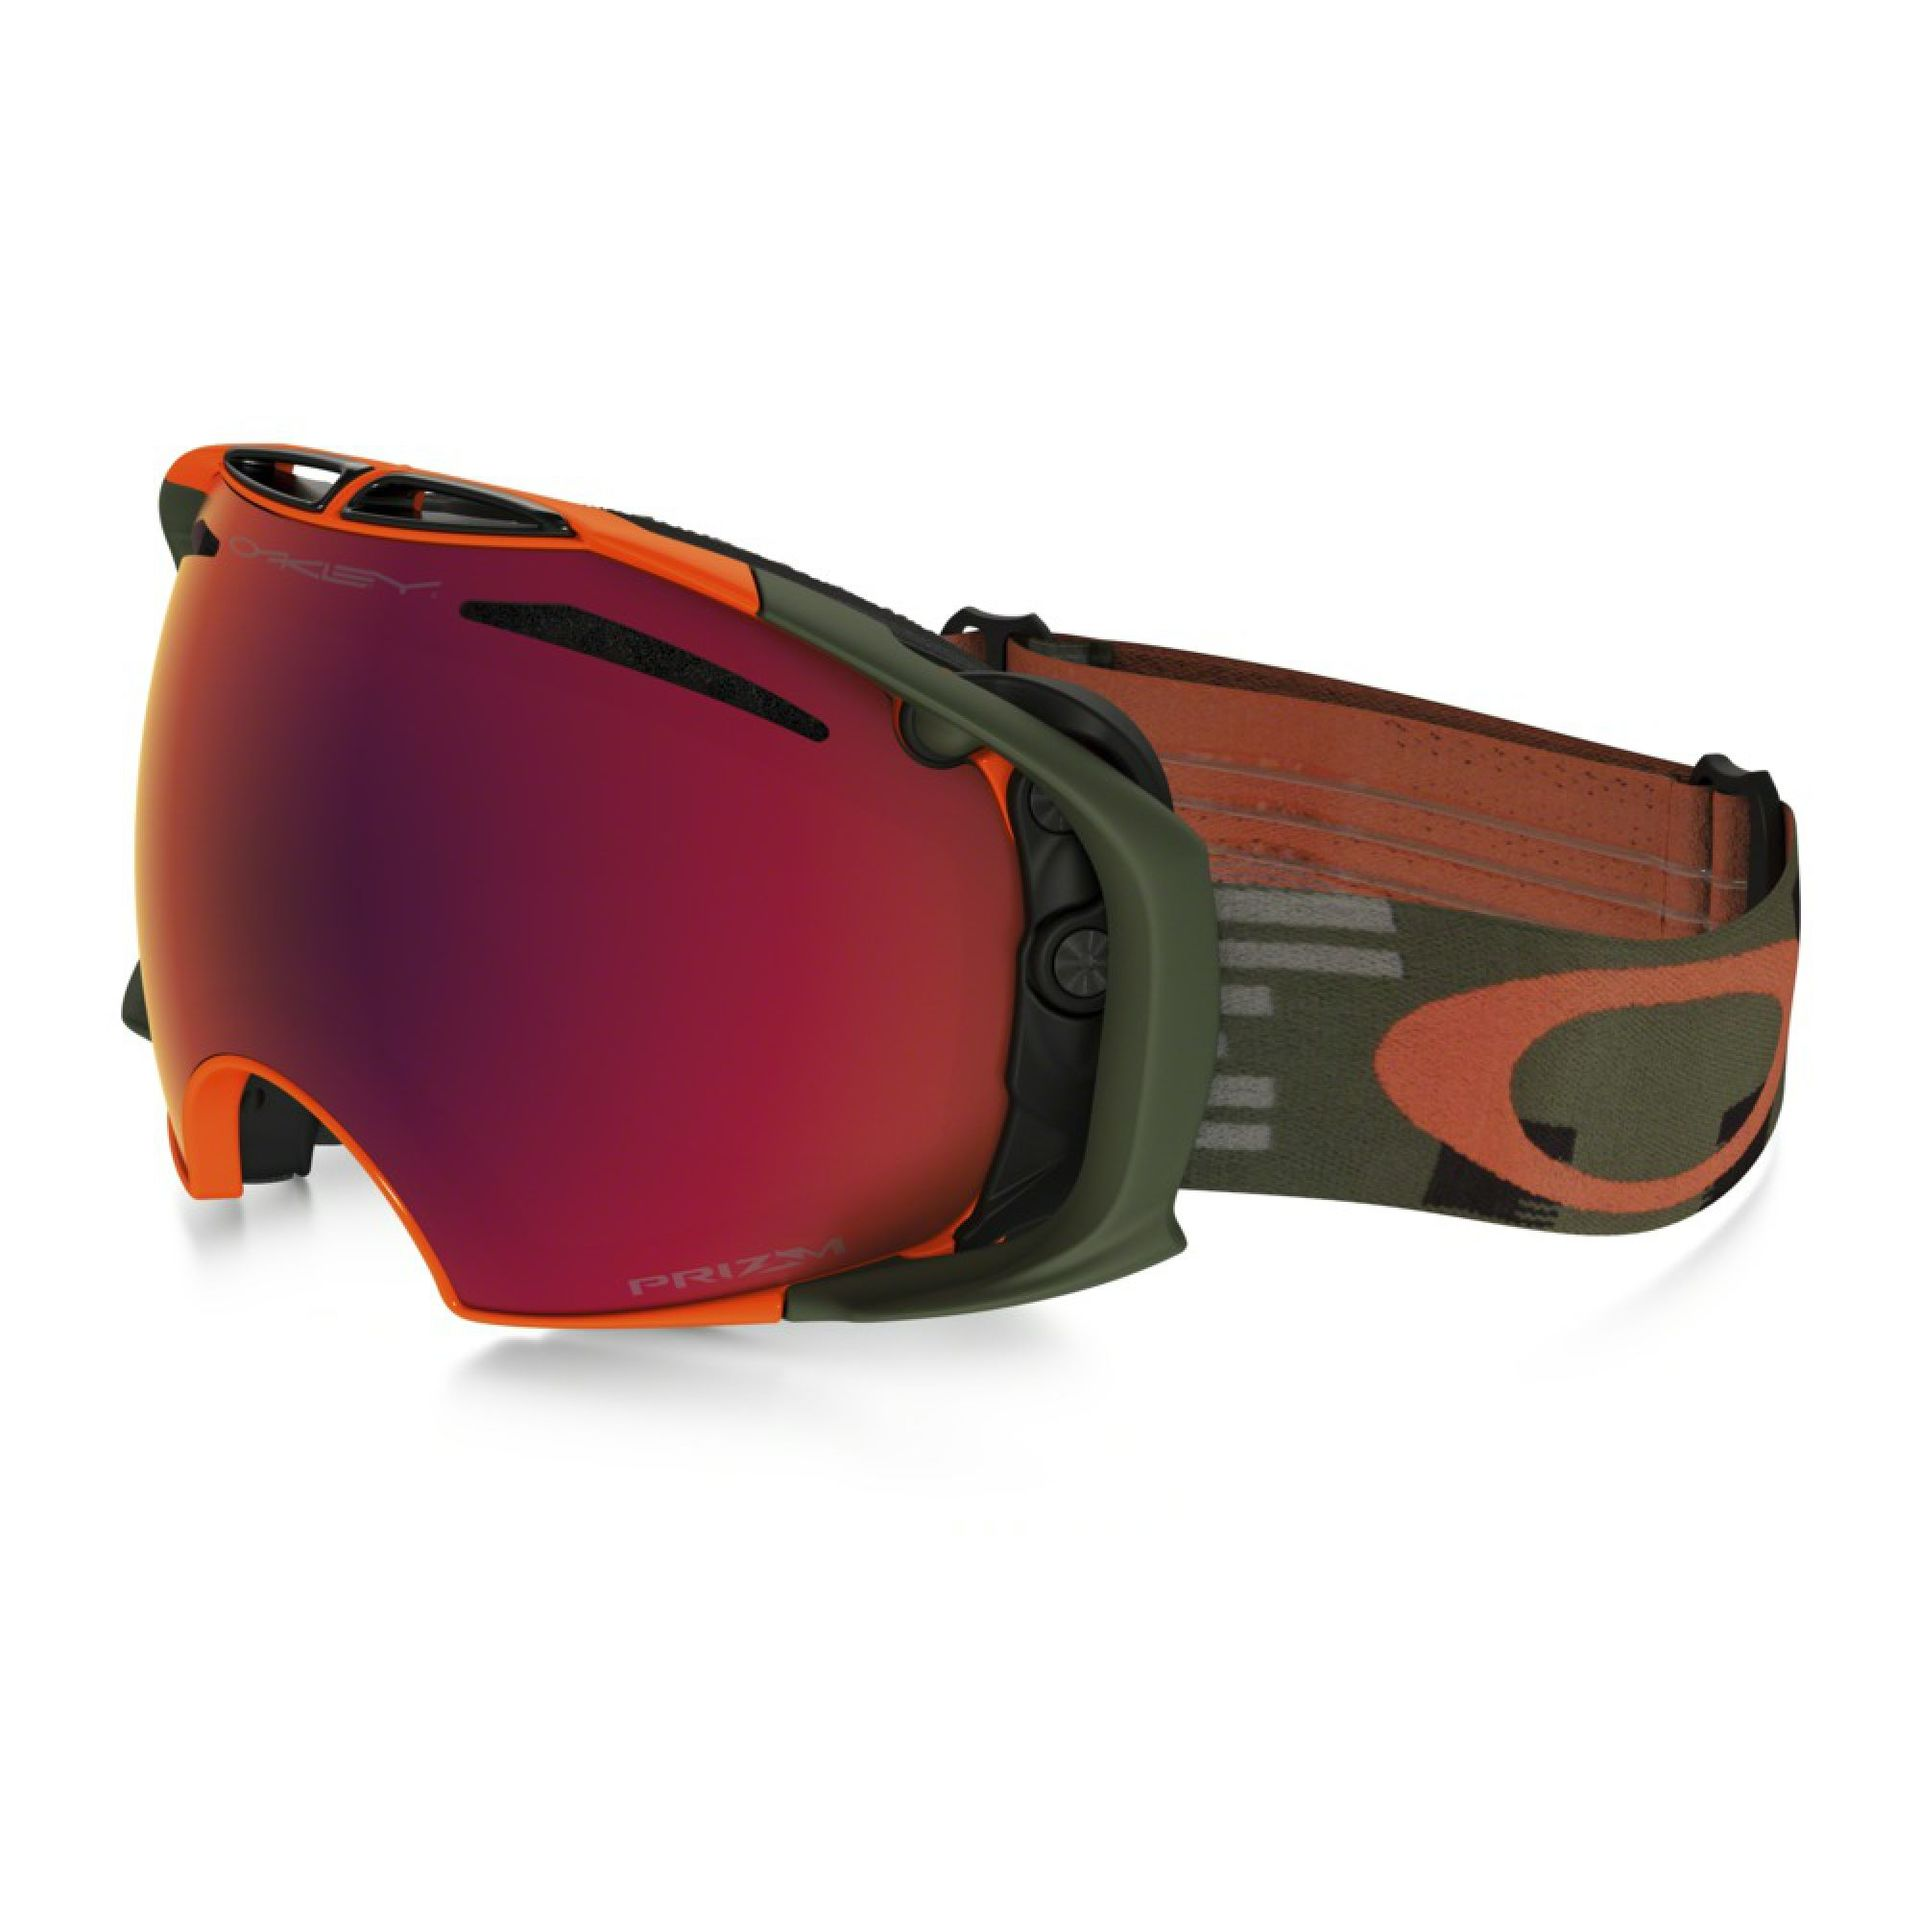 GOGLE OAKLEY AIRBRAKE DISRUPTIVE OLIVE ORANGE PRIZM TORCH IRIDIUM HI YELLOW IRIDIUM